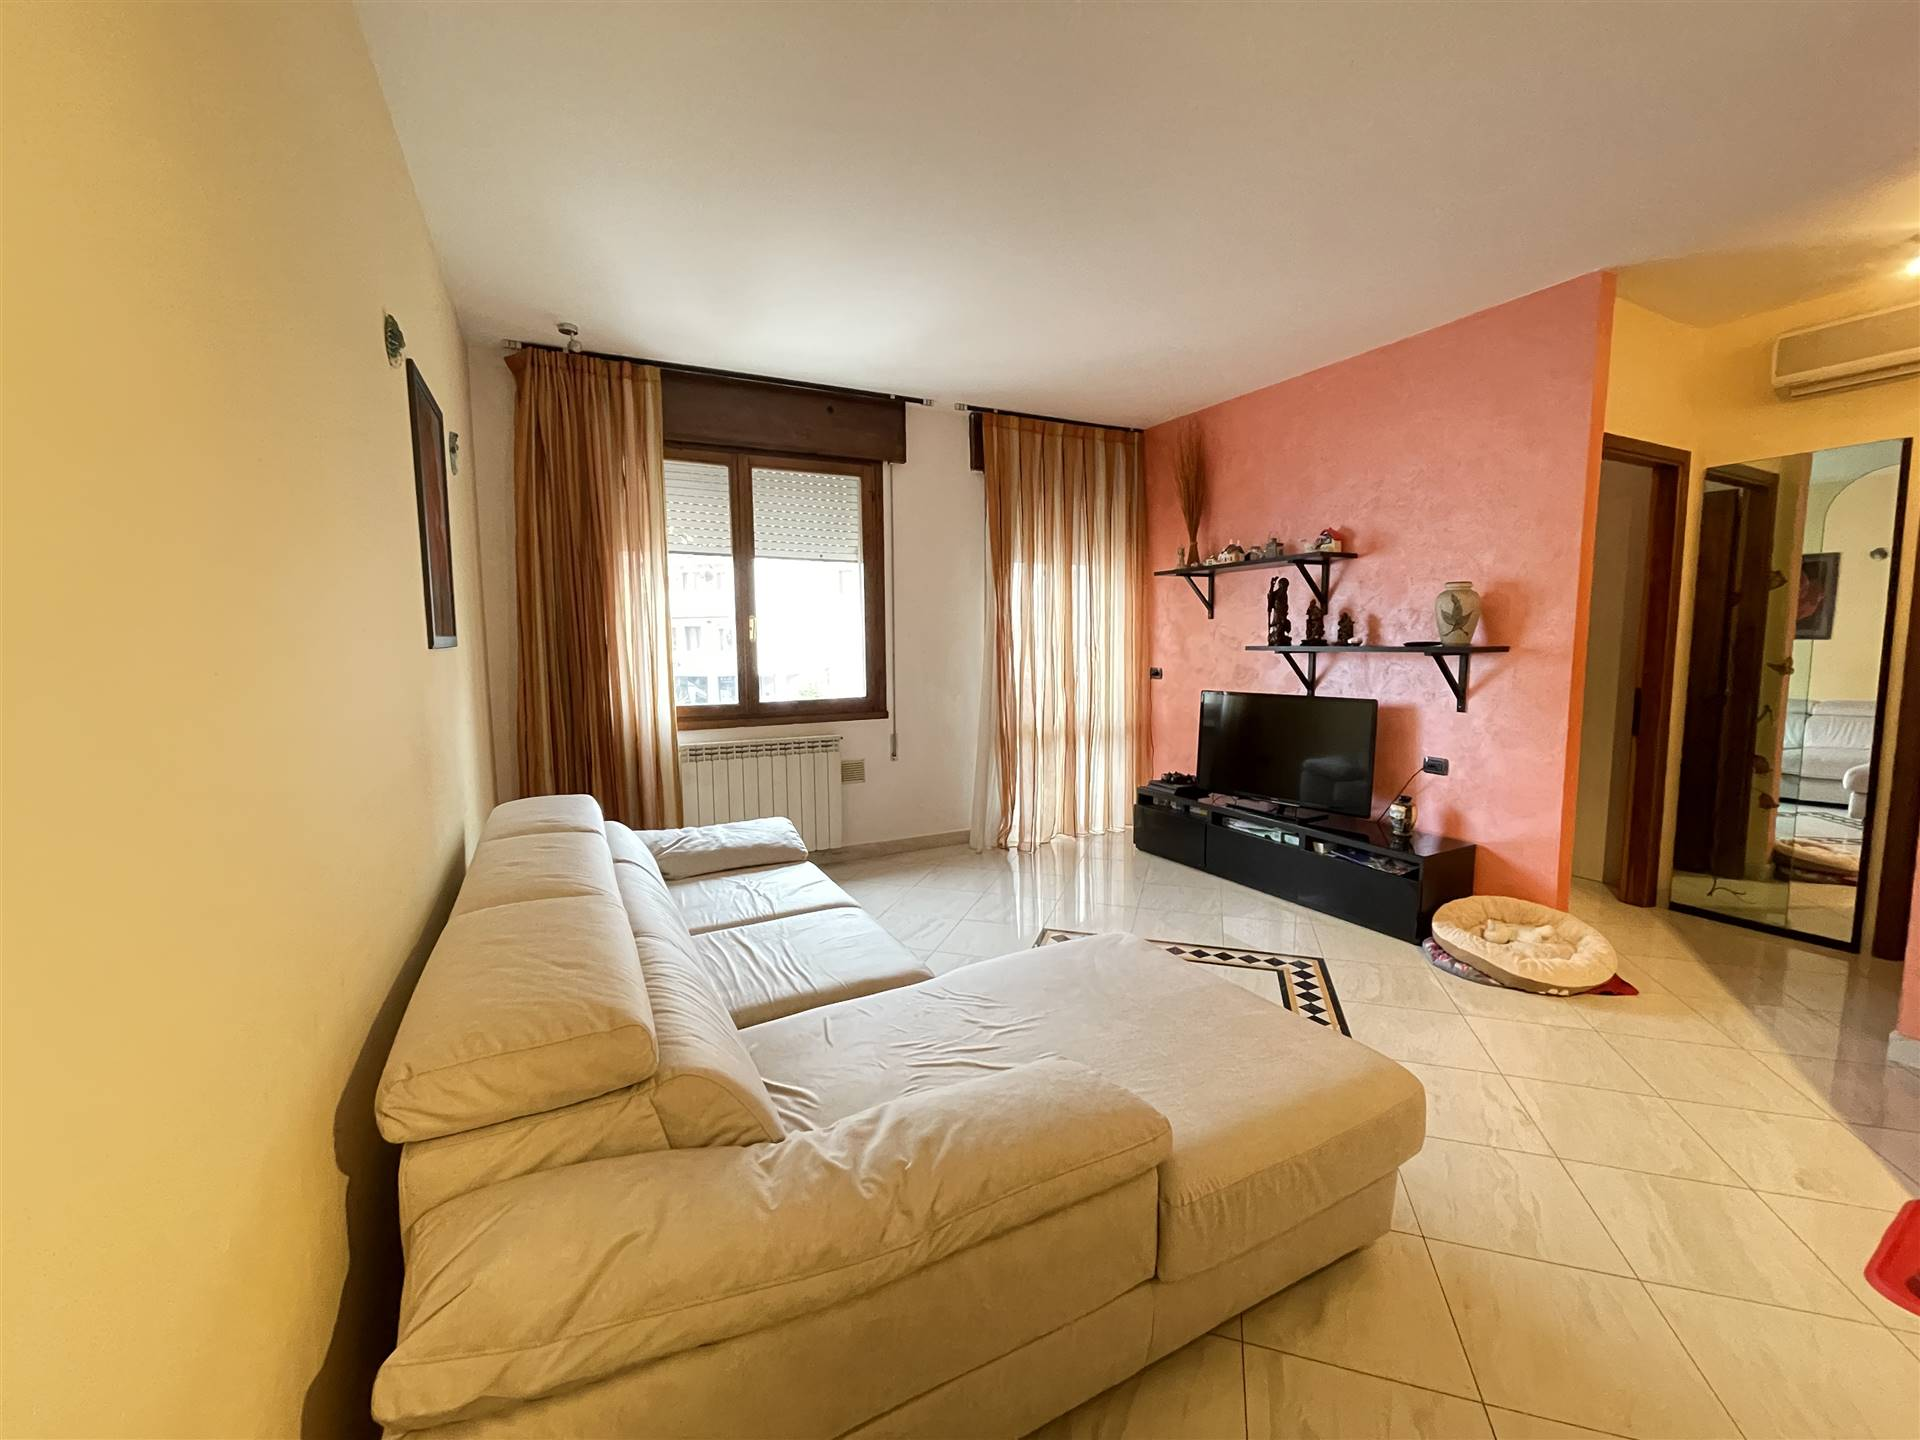 SOTTOMARINA, CHIOGGIA, Apartment for sale of 60 Sq. mt., Good condition, Heating Individual heating system, Energetic class: G, placed at 1° on 5,